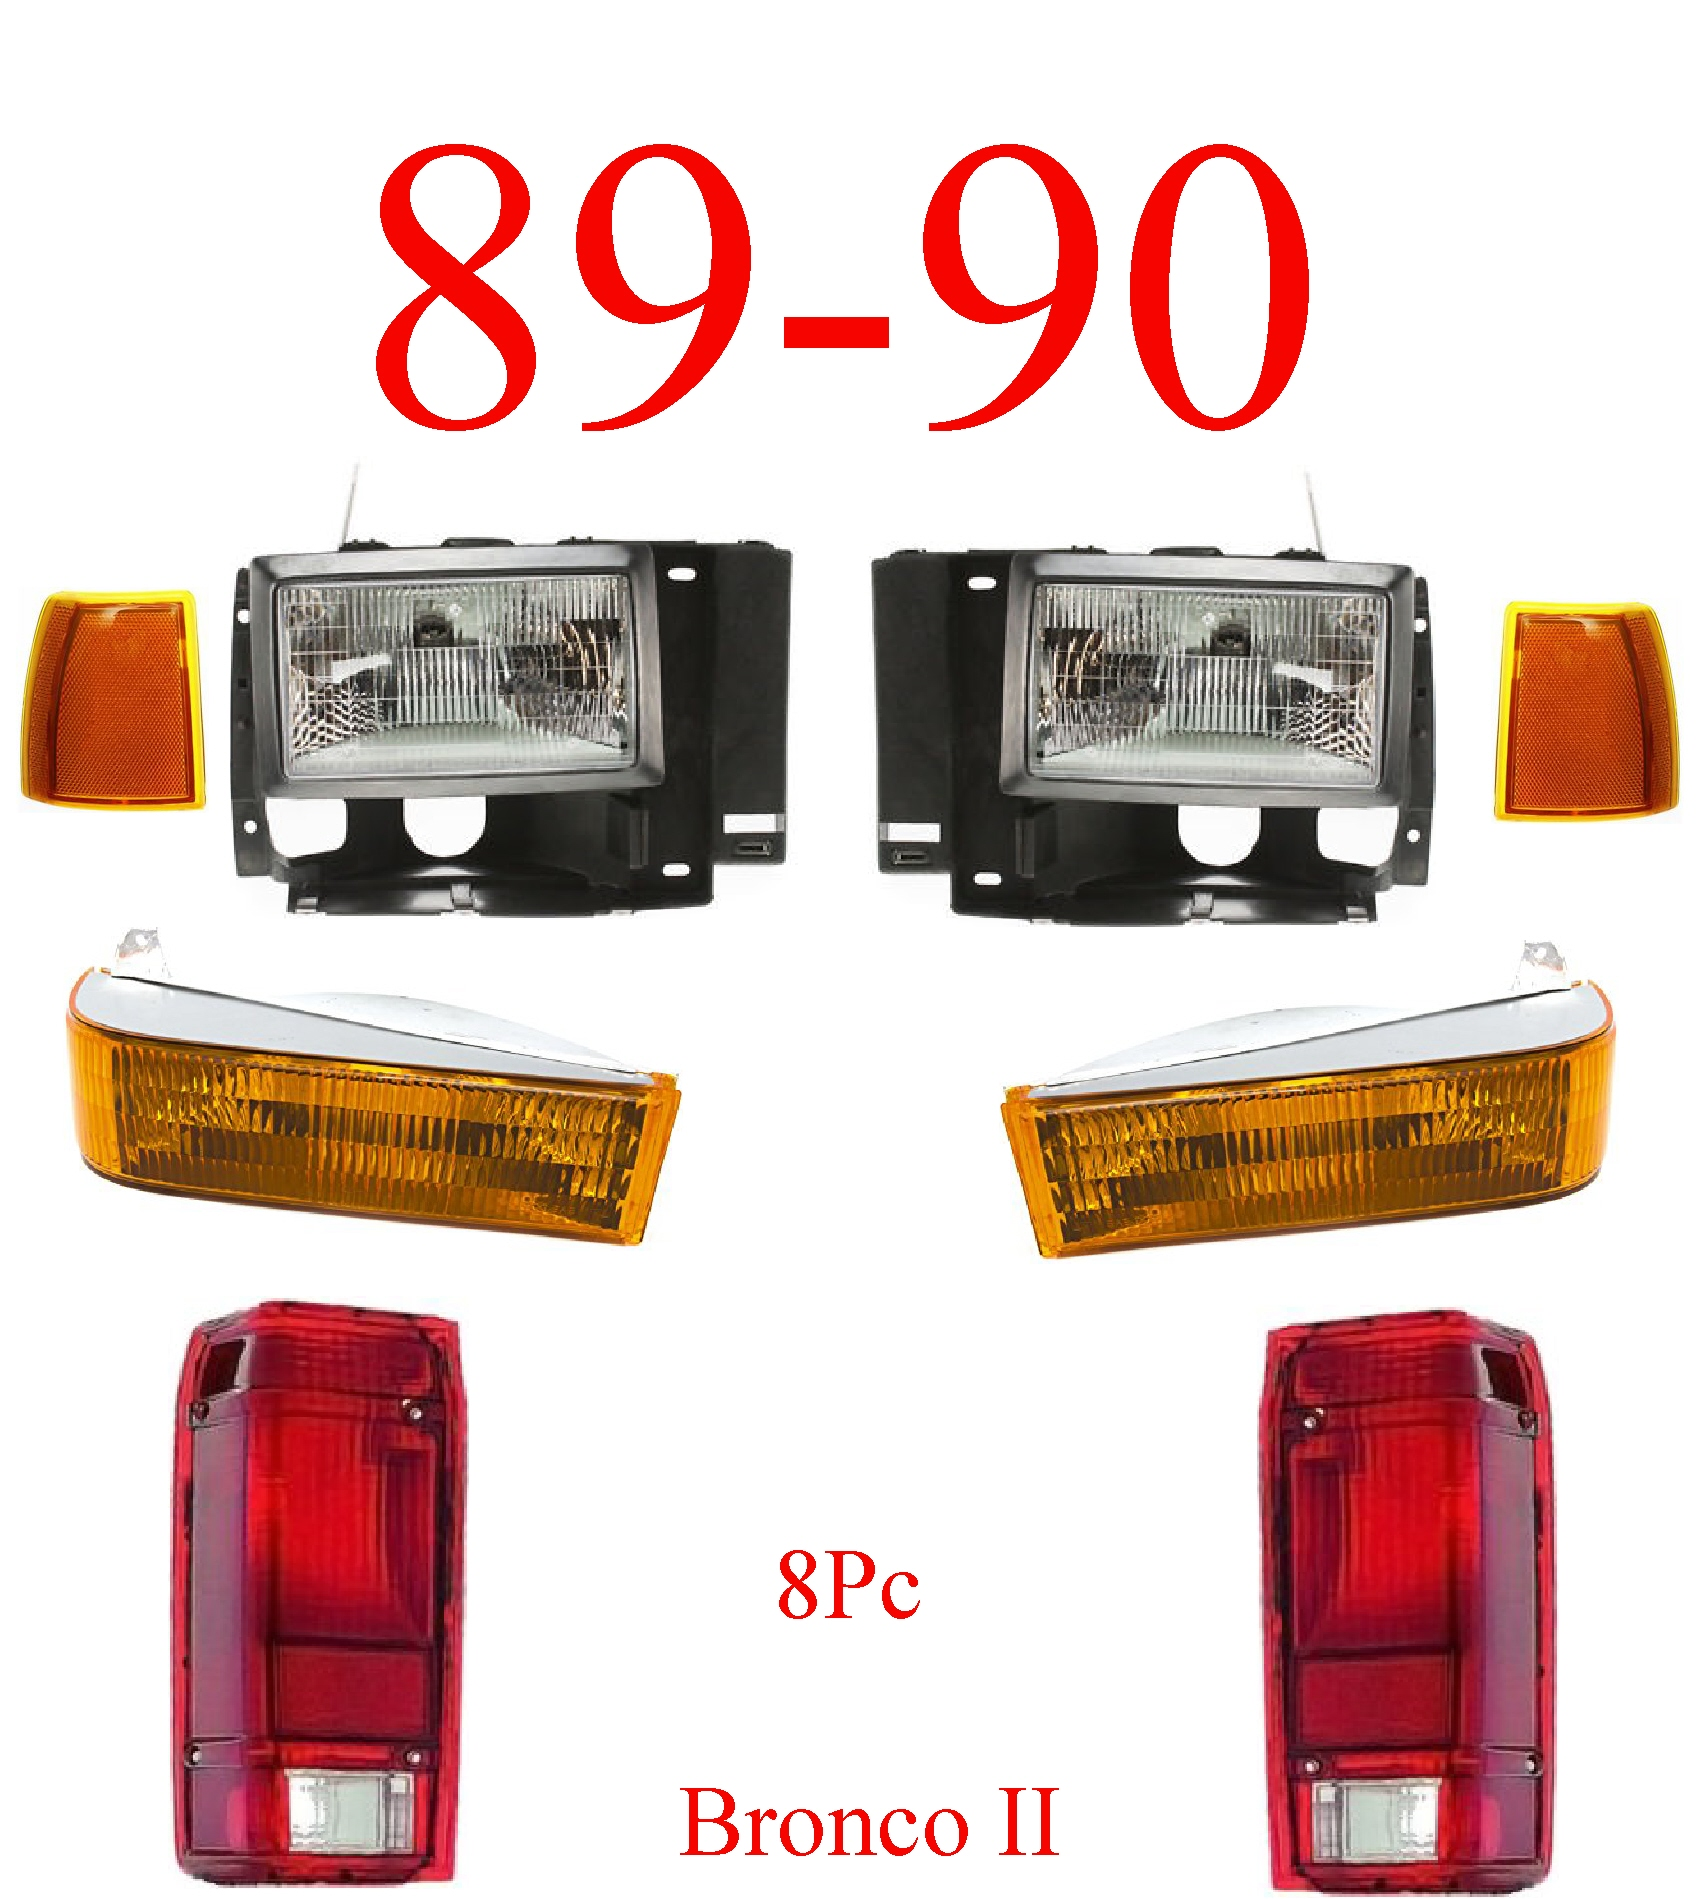 89-90 Ford Bronco II 8Pc Head & Tail Light